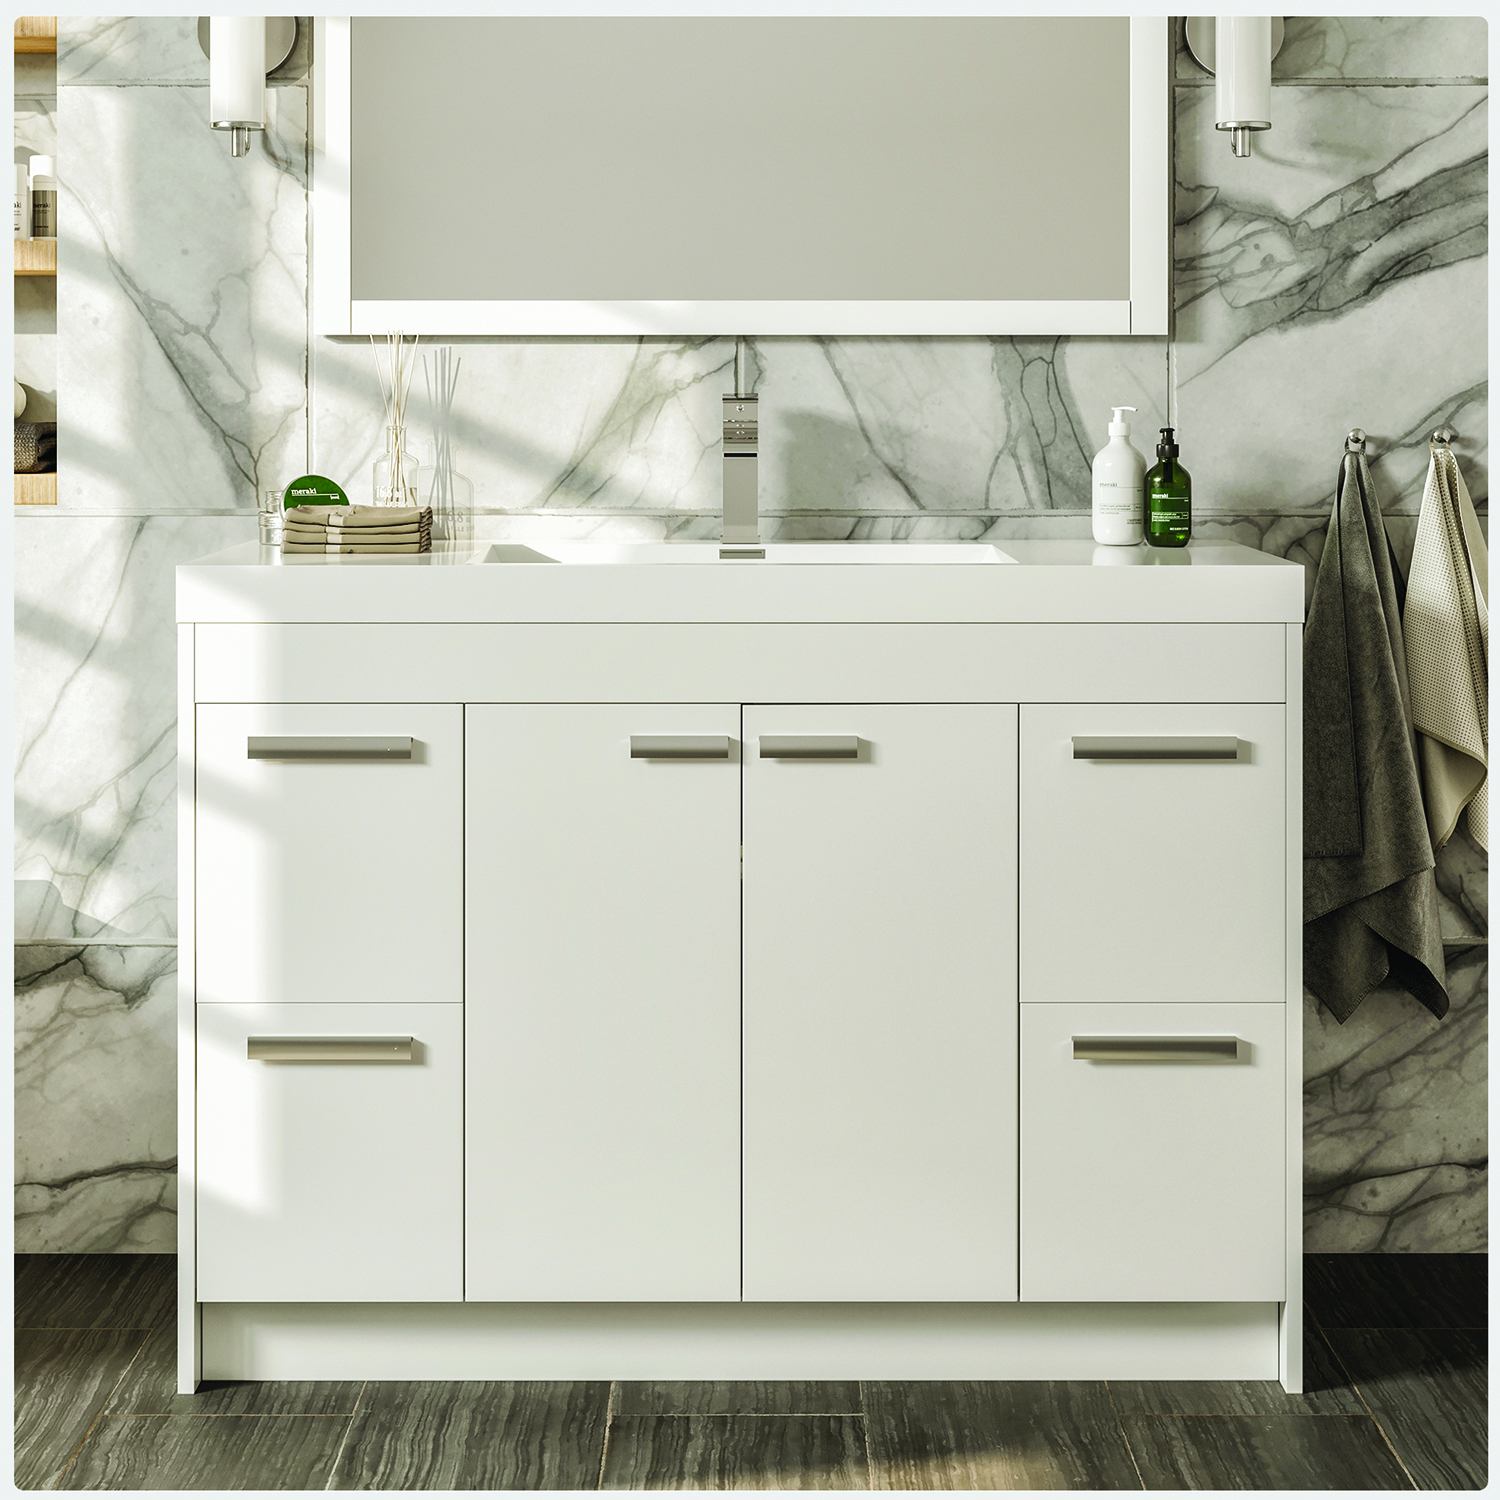 Iva lugano 48 white modern bathroom vanity with white for Modern white bathroom vanity